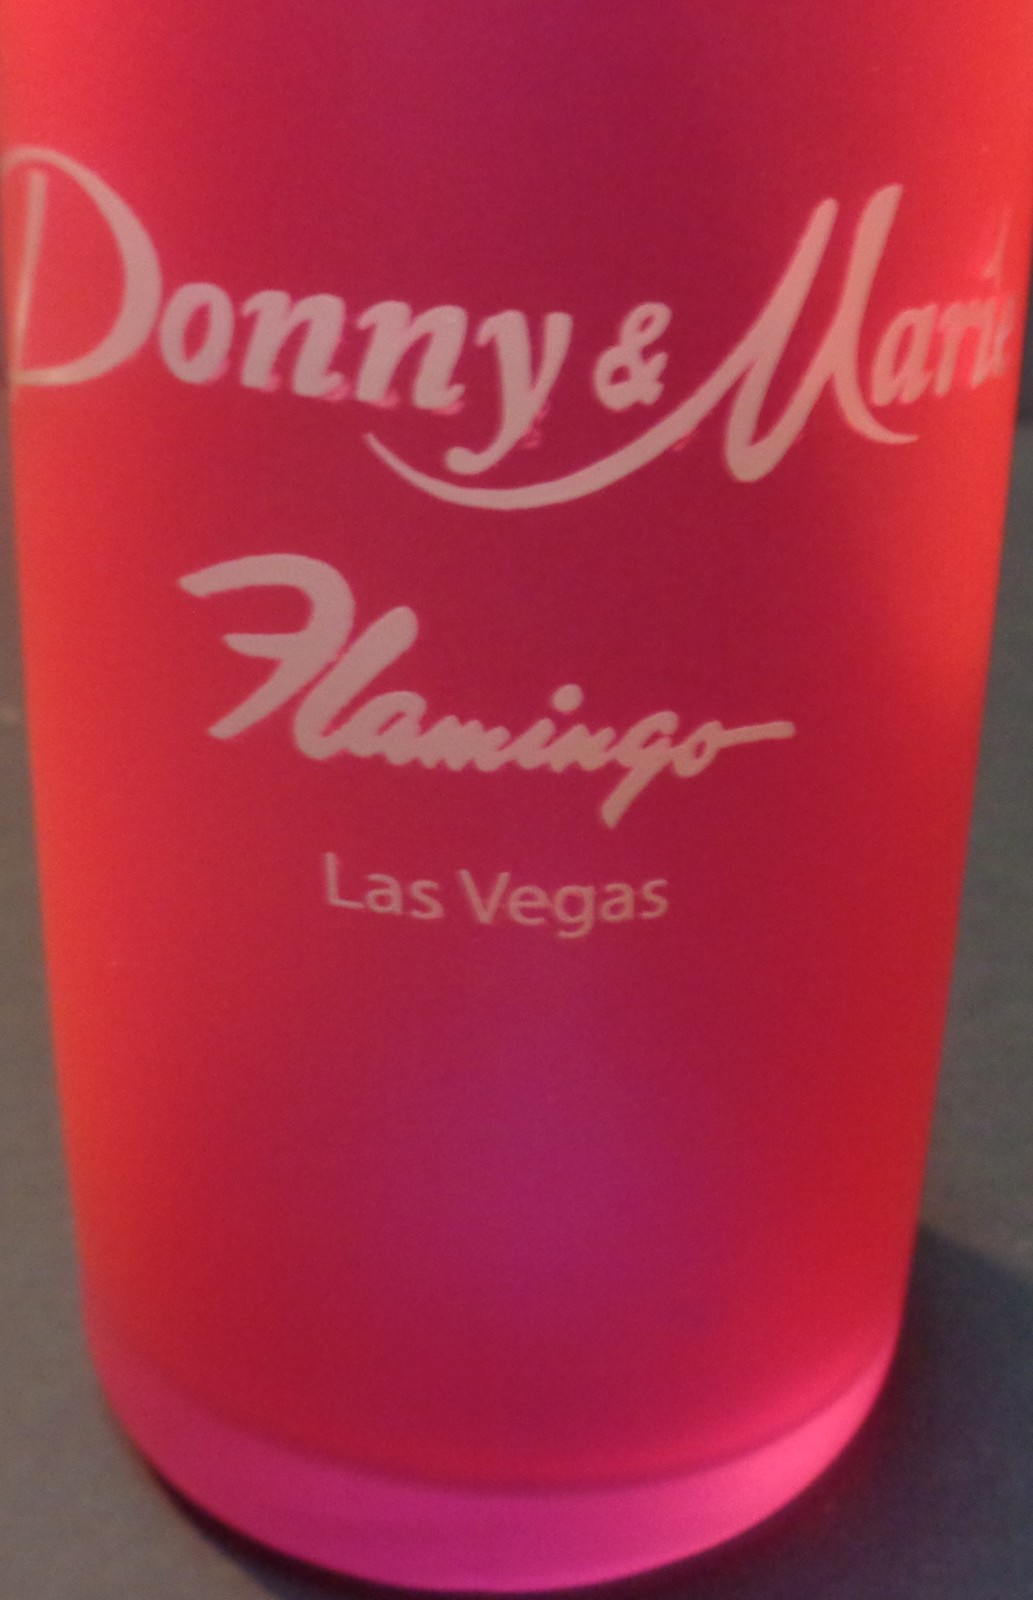 Donny & Marie Pink Curve Vegas Glass 16 OZ Entertainers